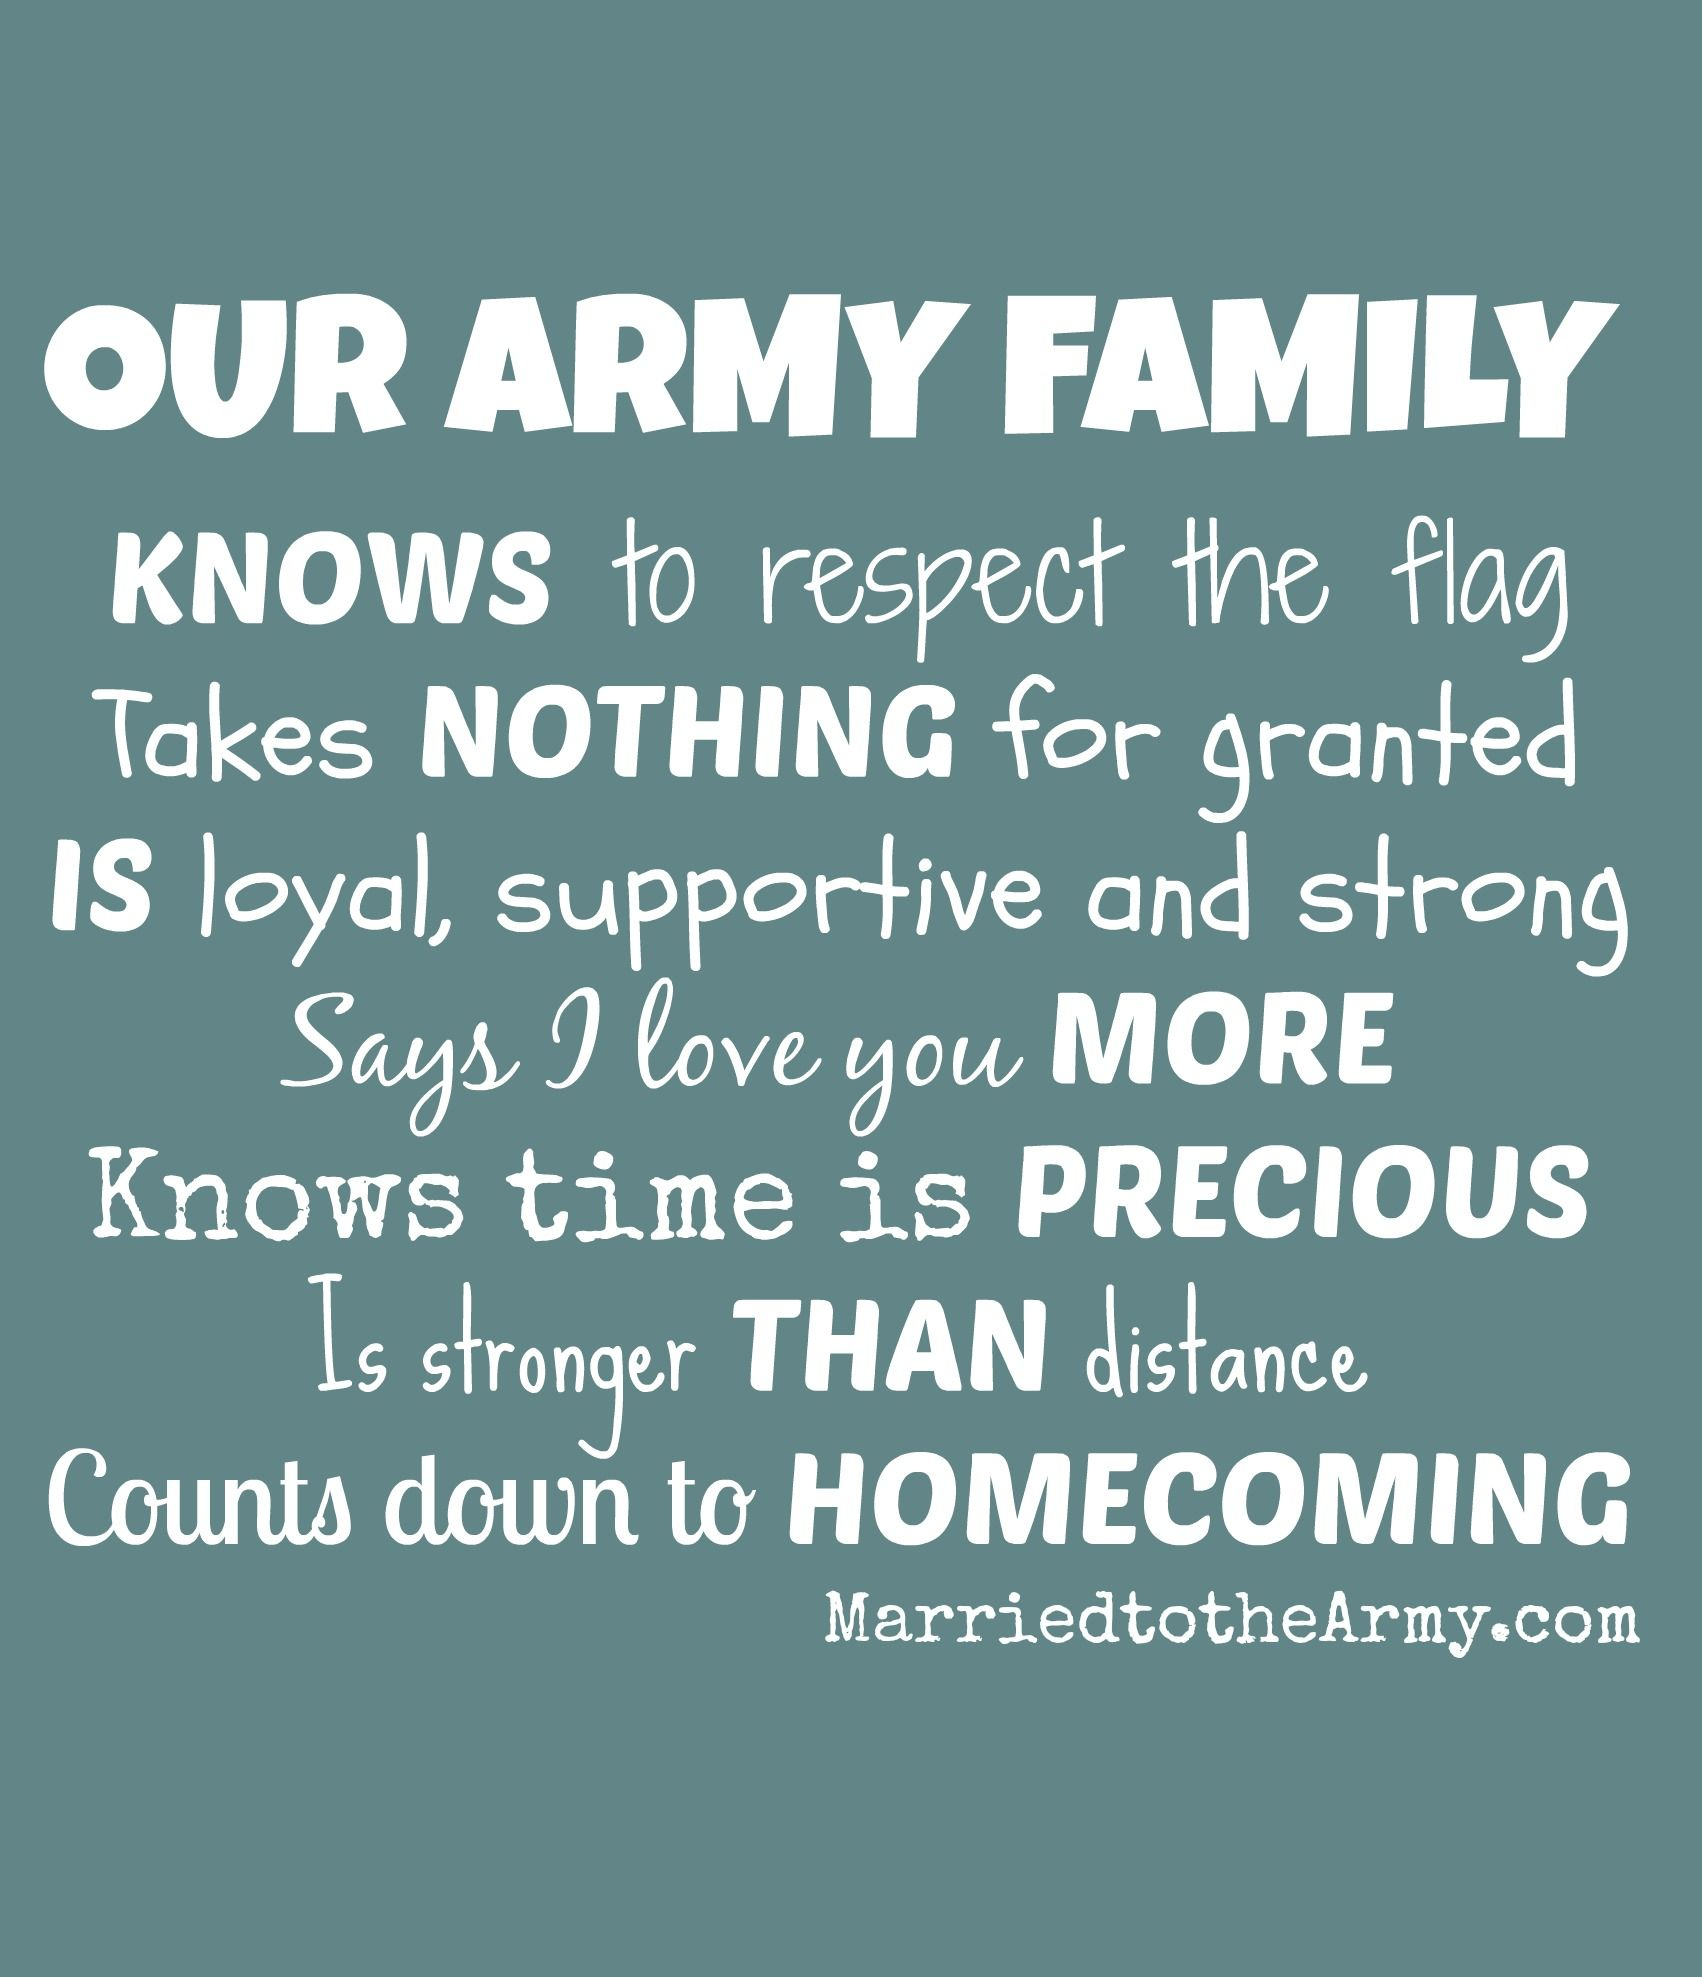 Our Army Family Knows Nothing Is More Precious Than Home ing